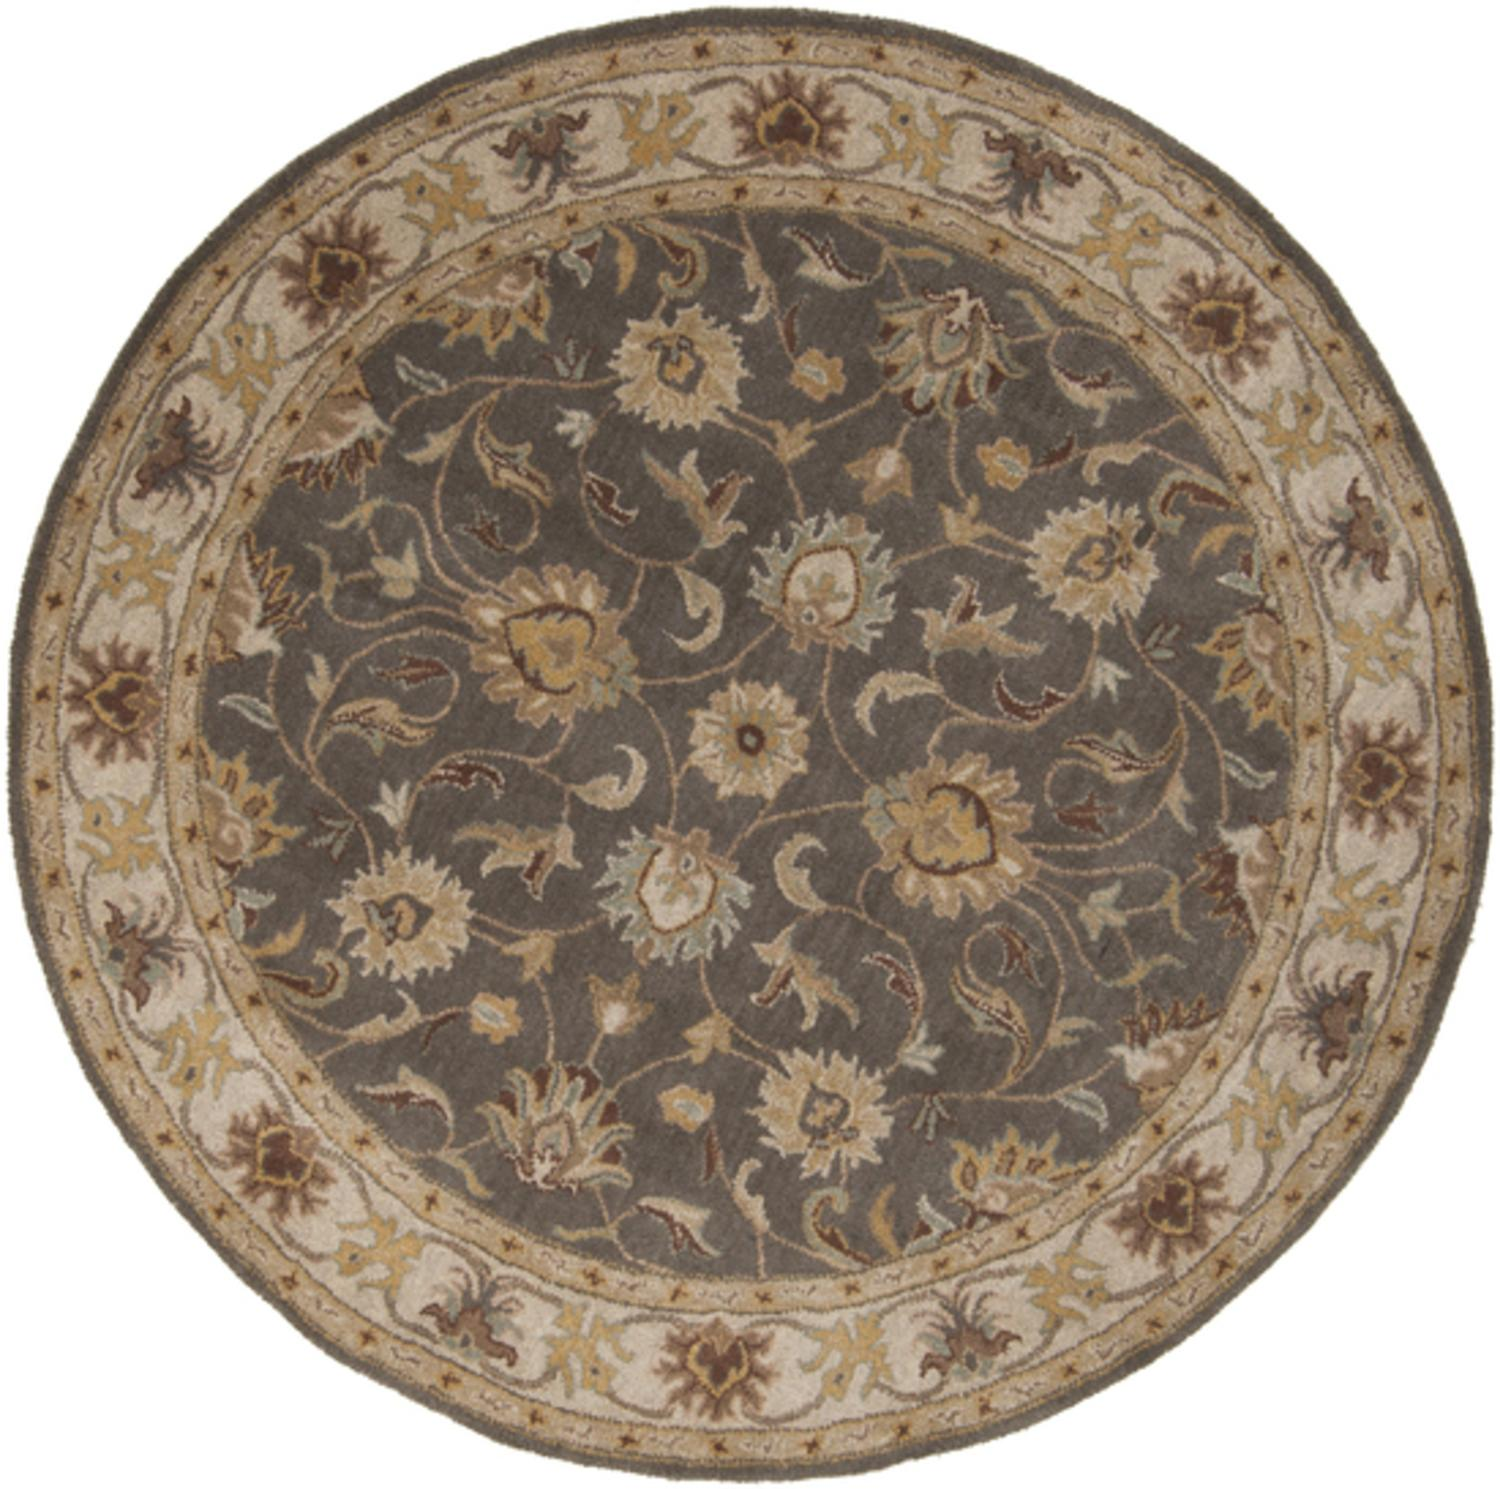 4' Augustus Heather Gray and Brown Taupe Hand Tufted Round Wool Area Throw Rug